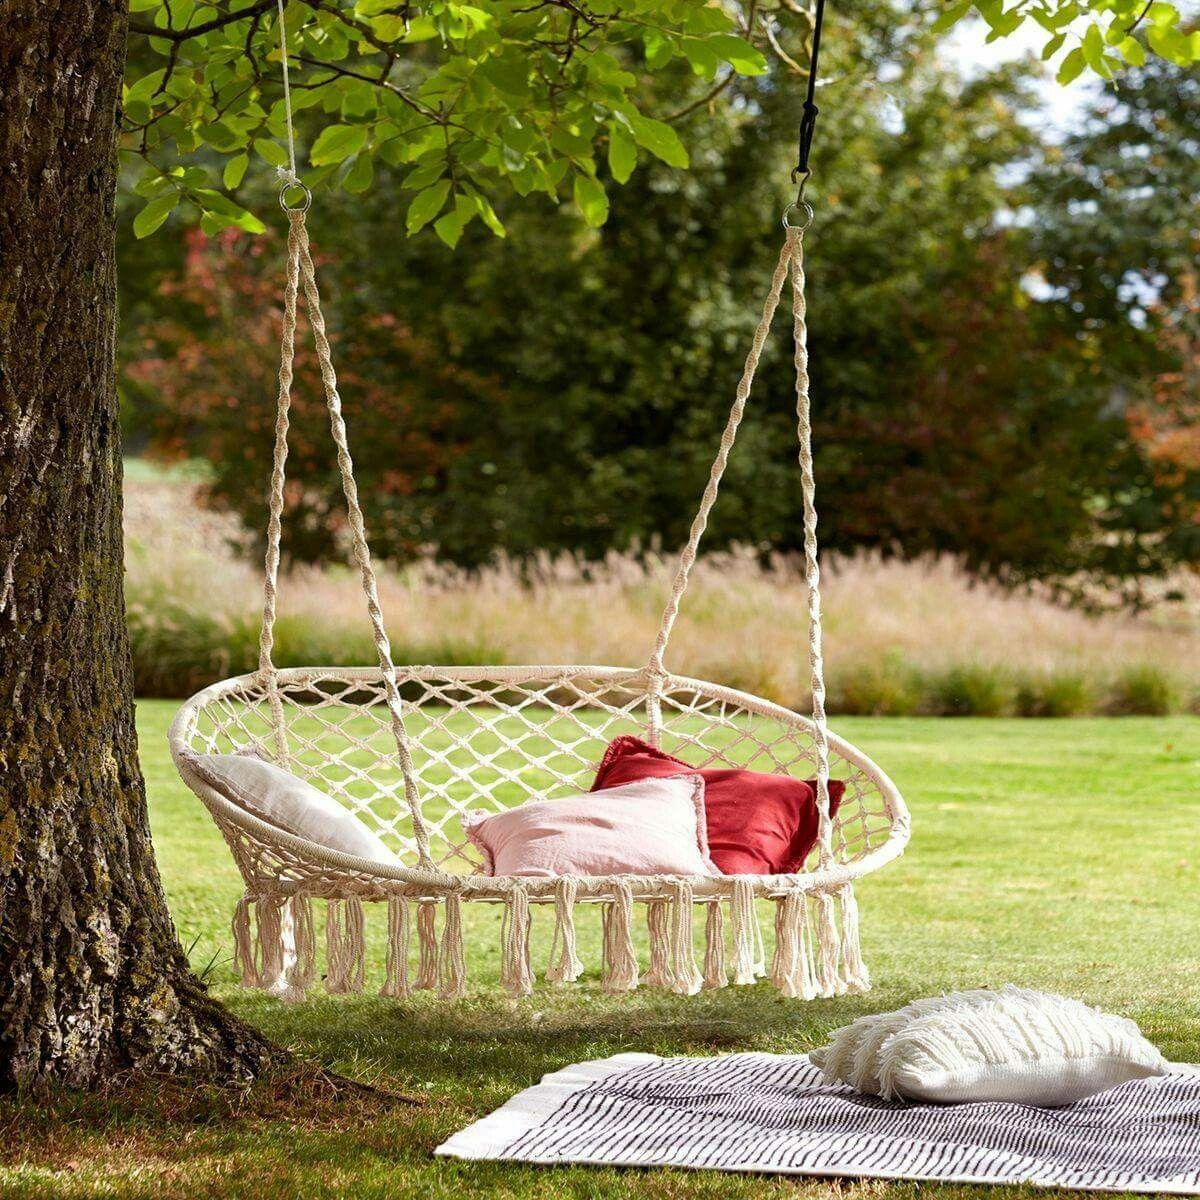 Pin by Whitney Hood on maison Garden swing seat, Garden